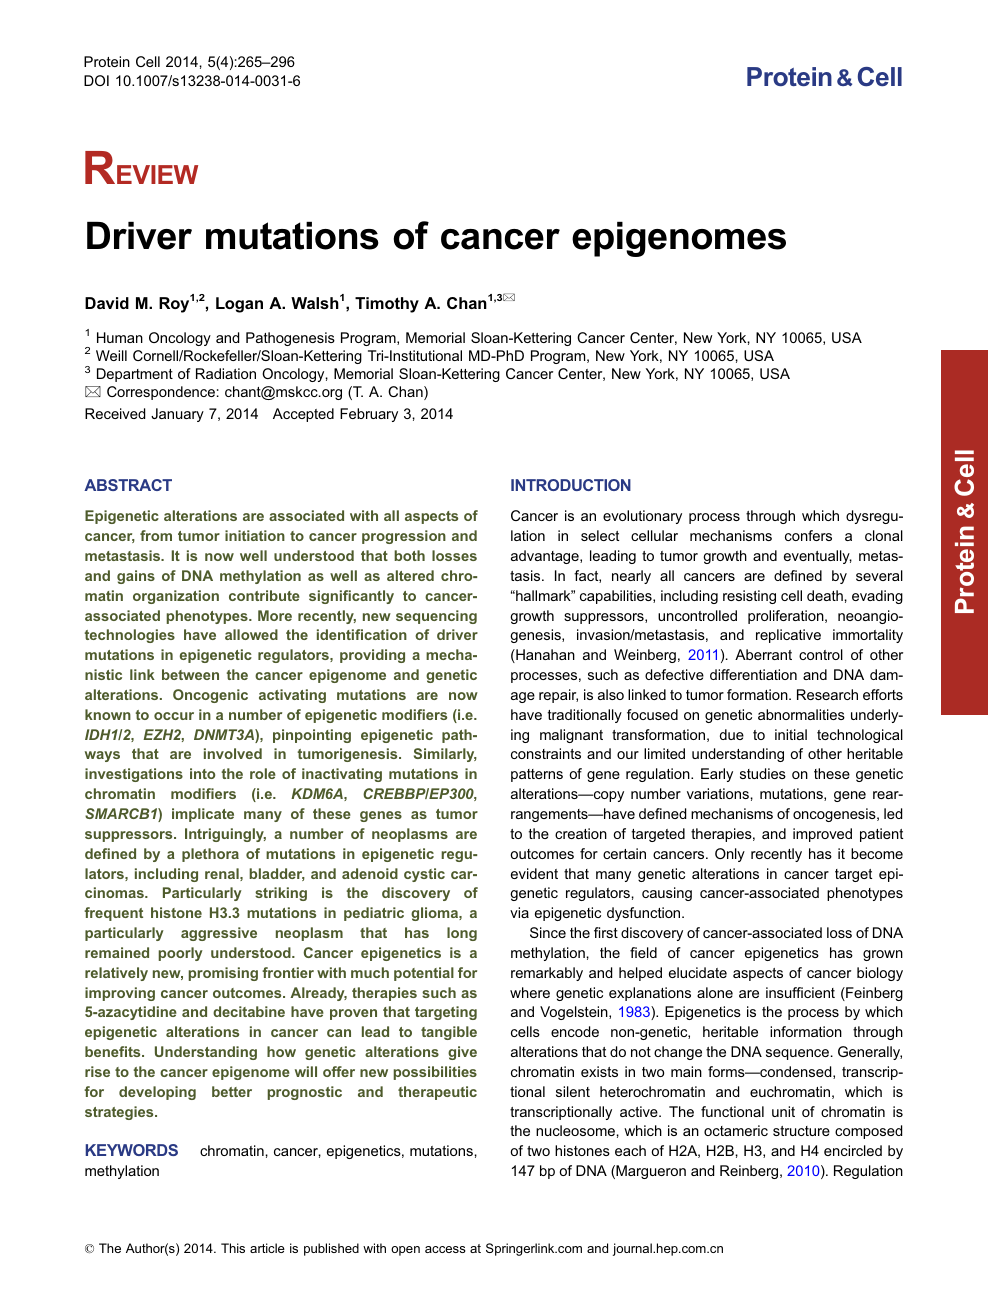 Driver mutations of cancer epigenomes – topic of research paper in